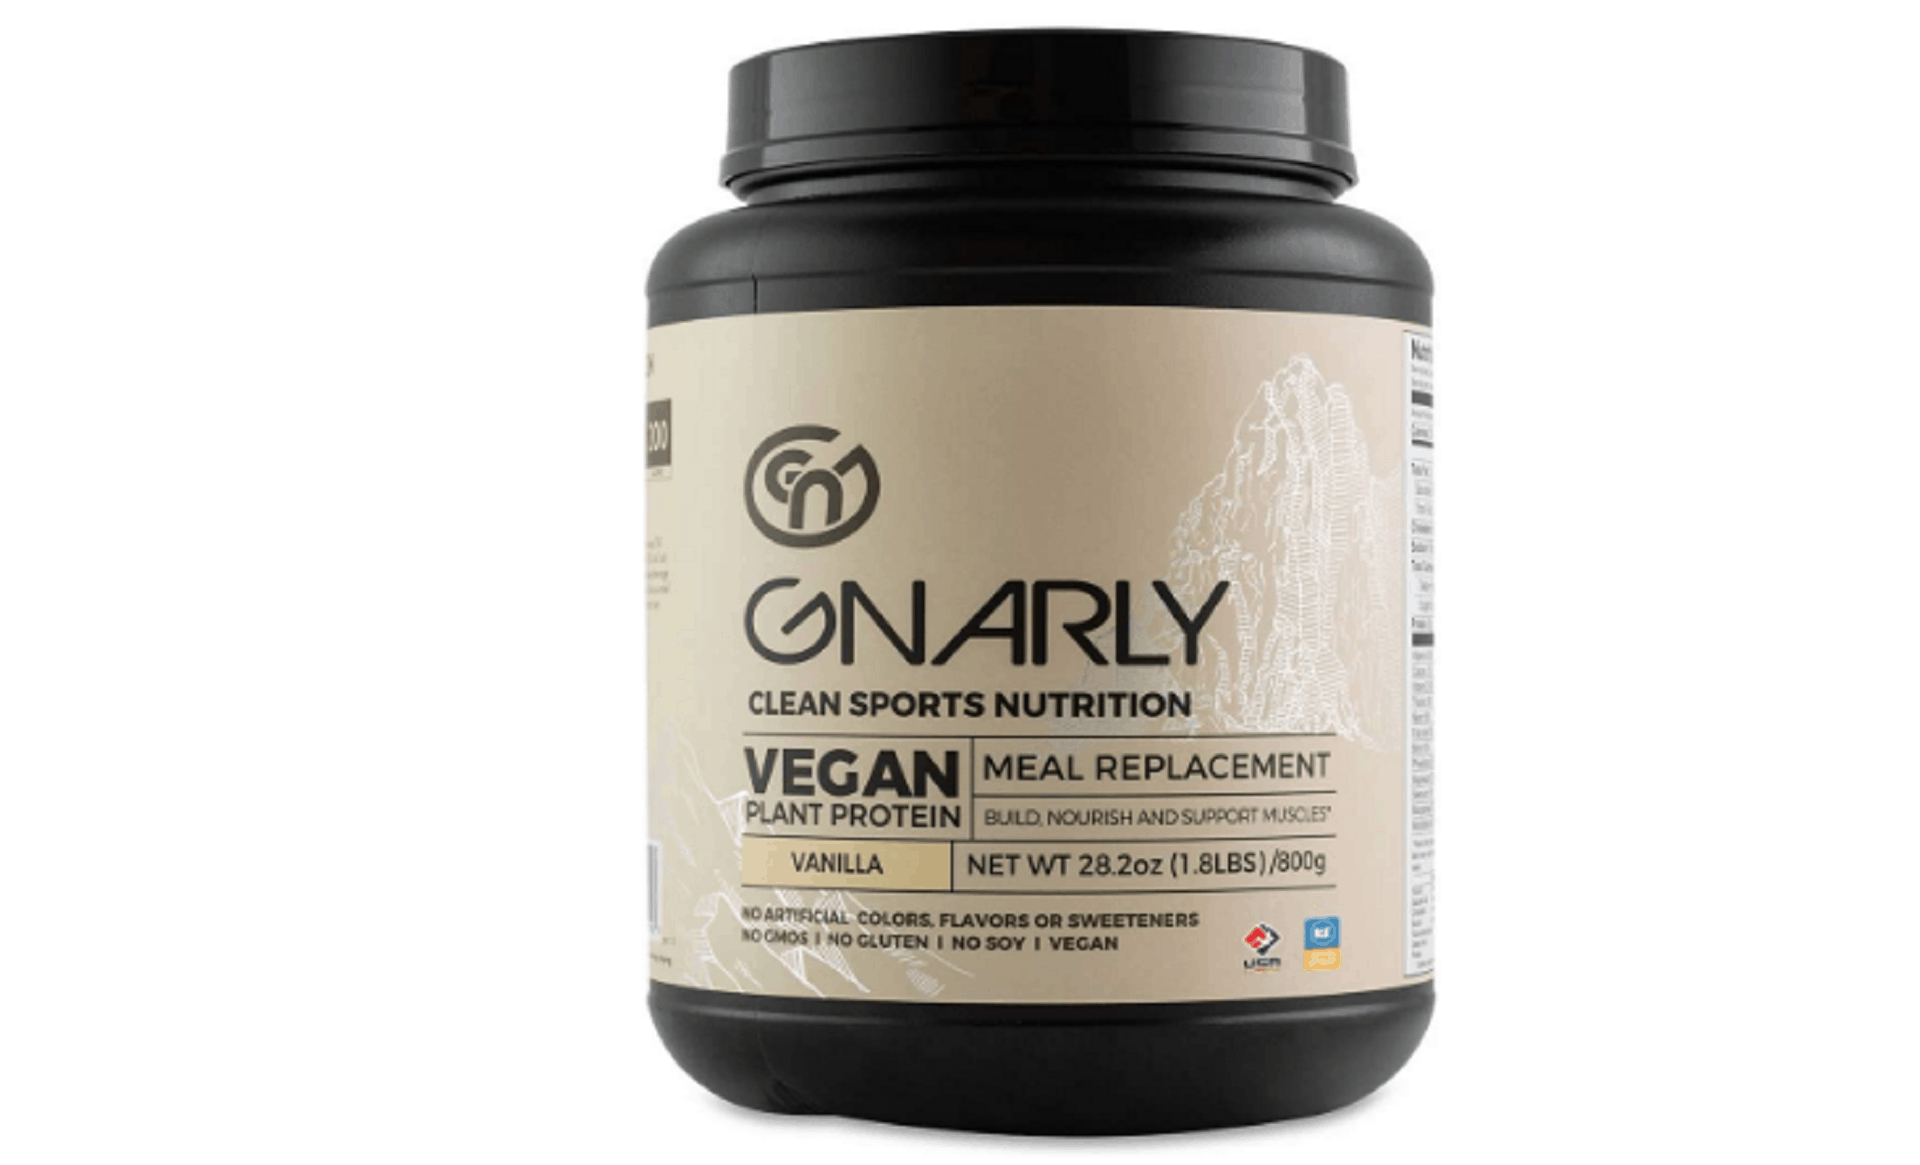 gnarly meal replacement shake